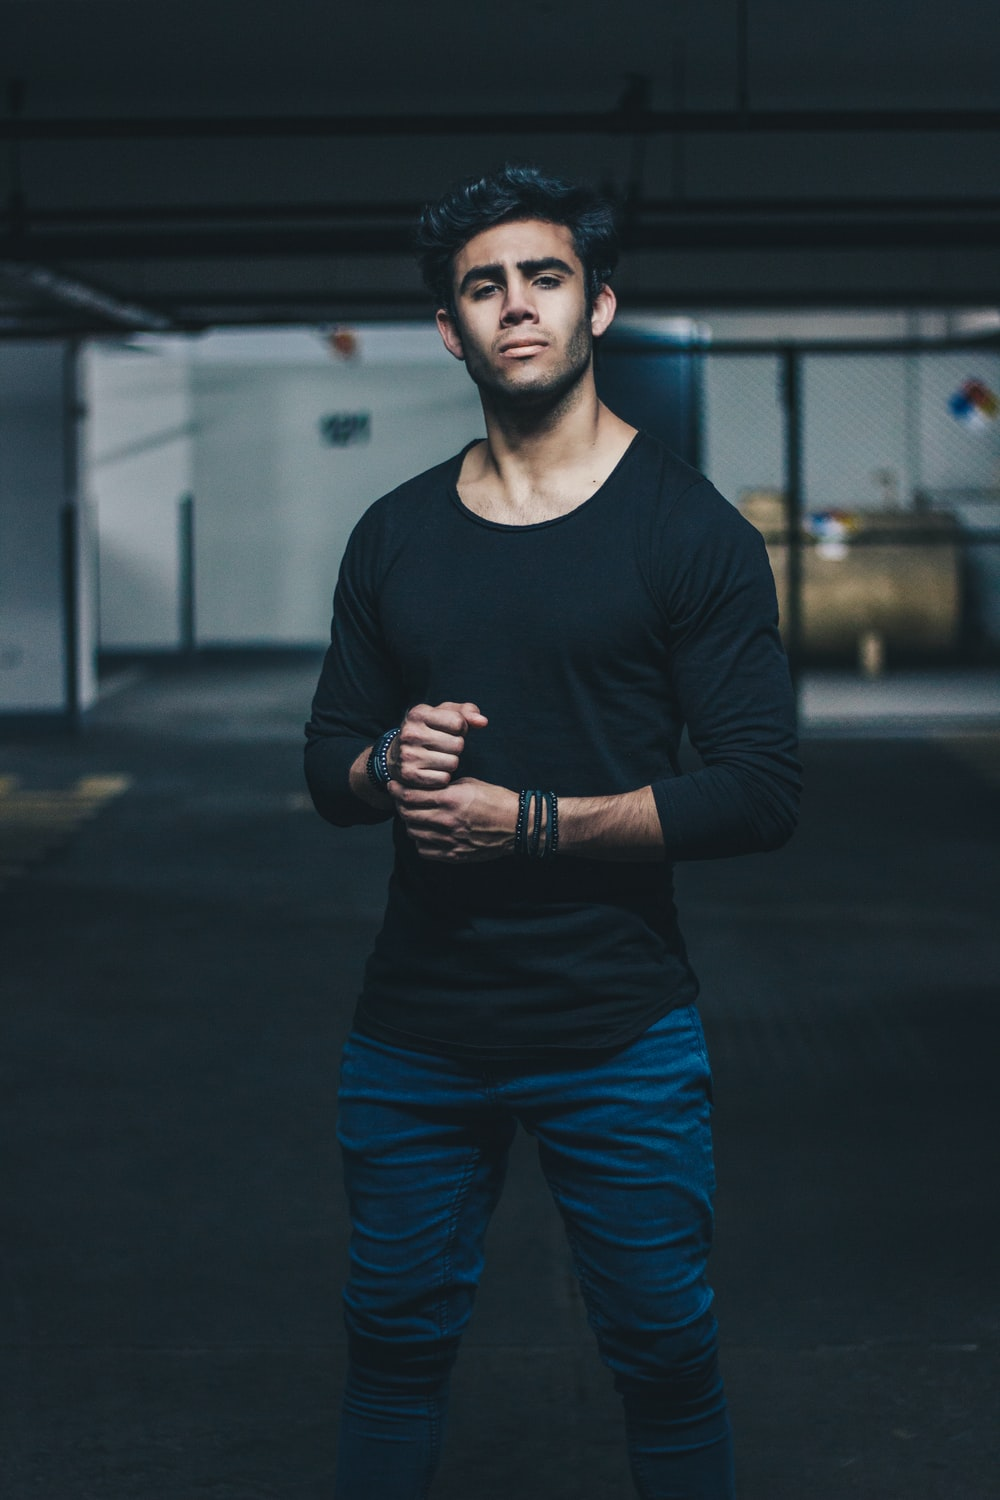 man wearing black crew-neck long-sleeved t-shirt